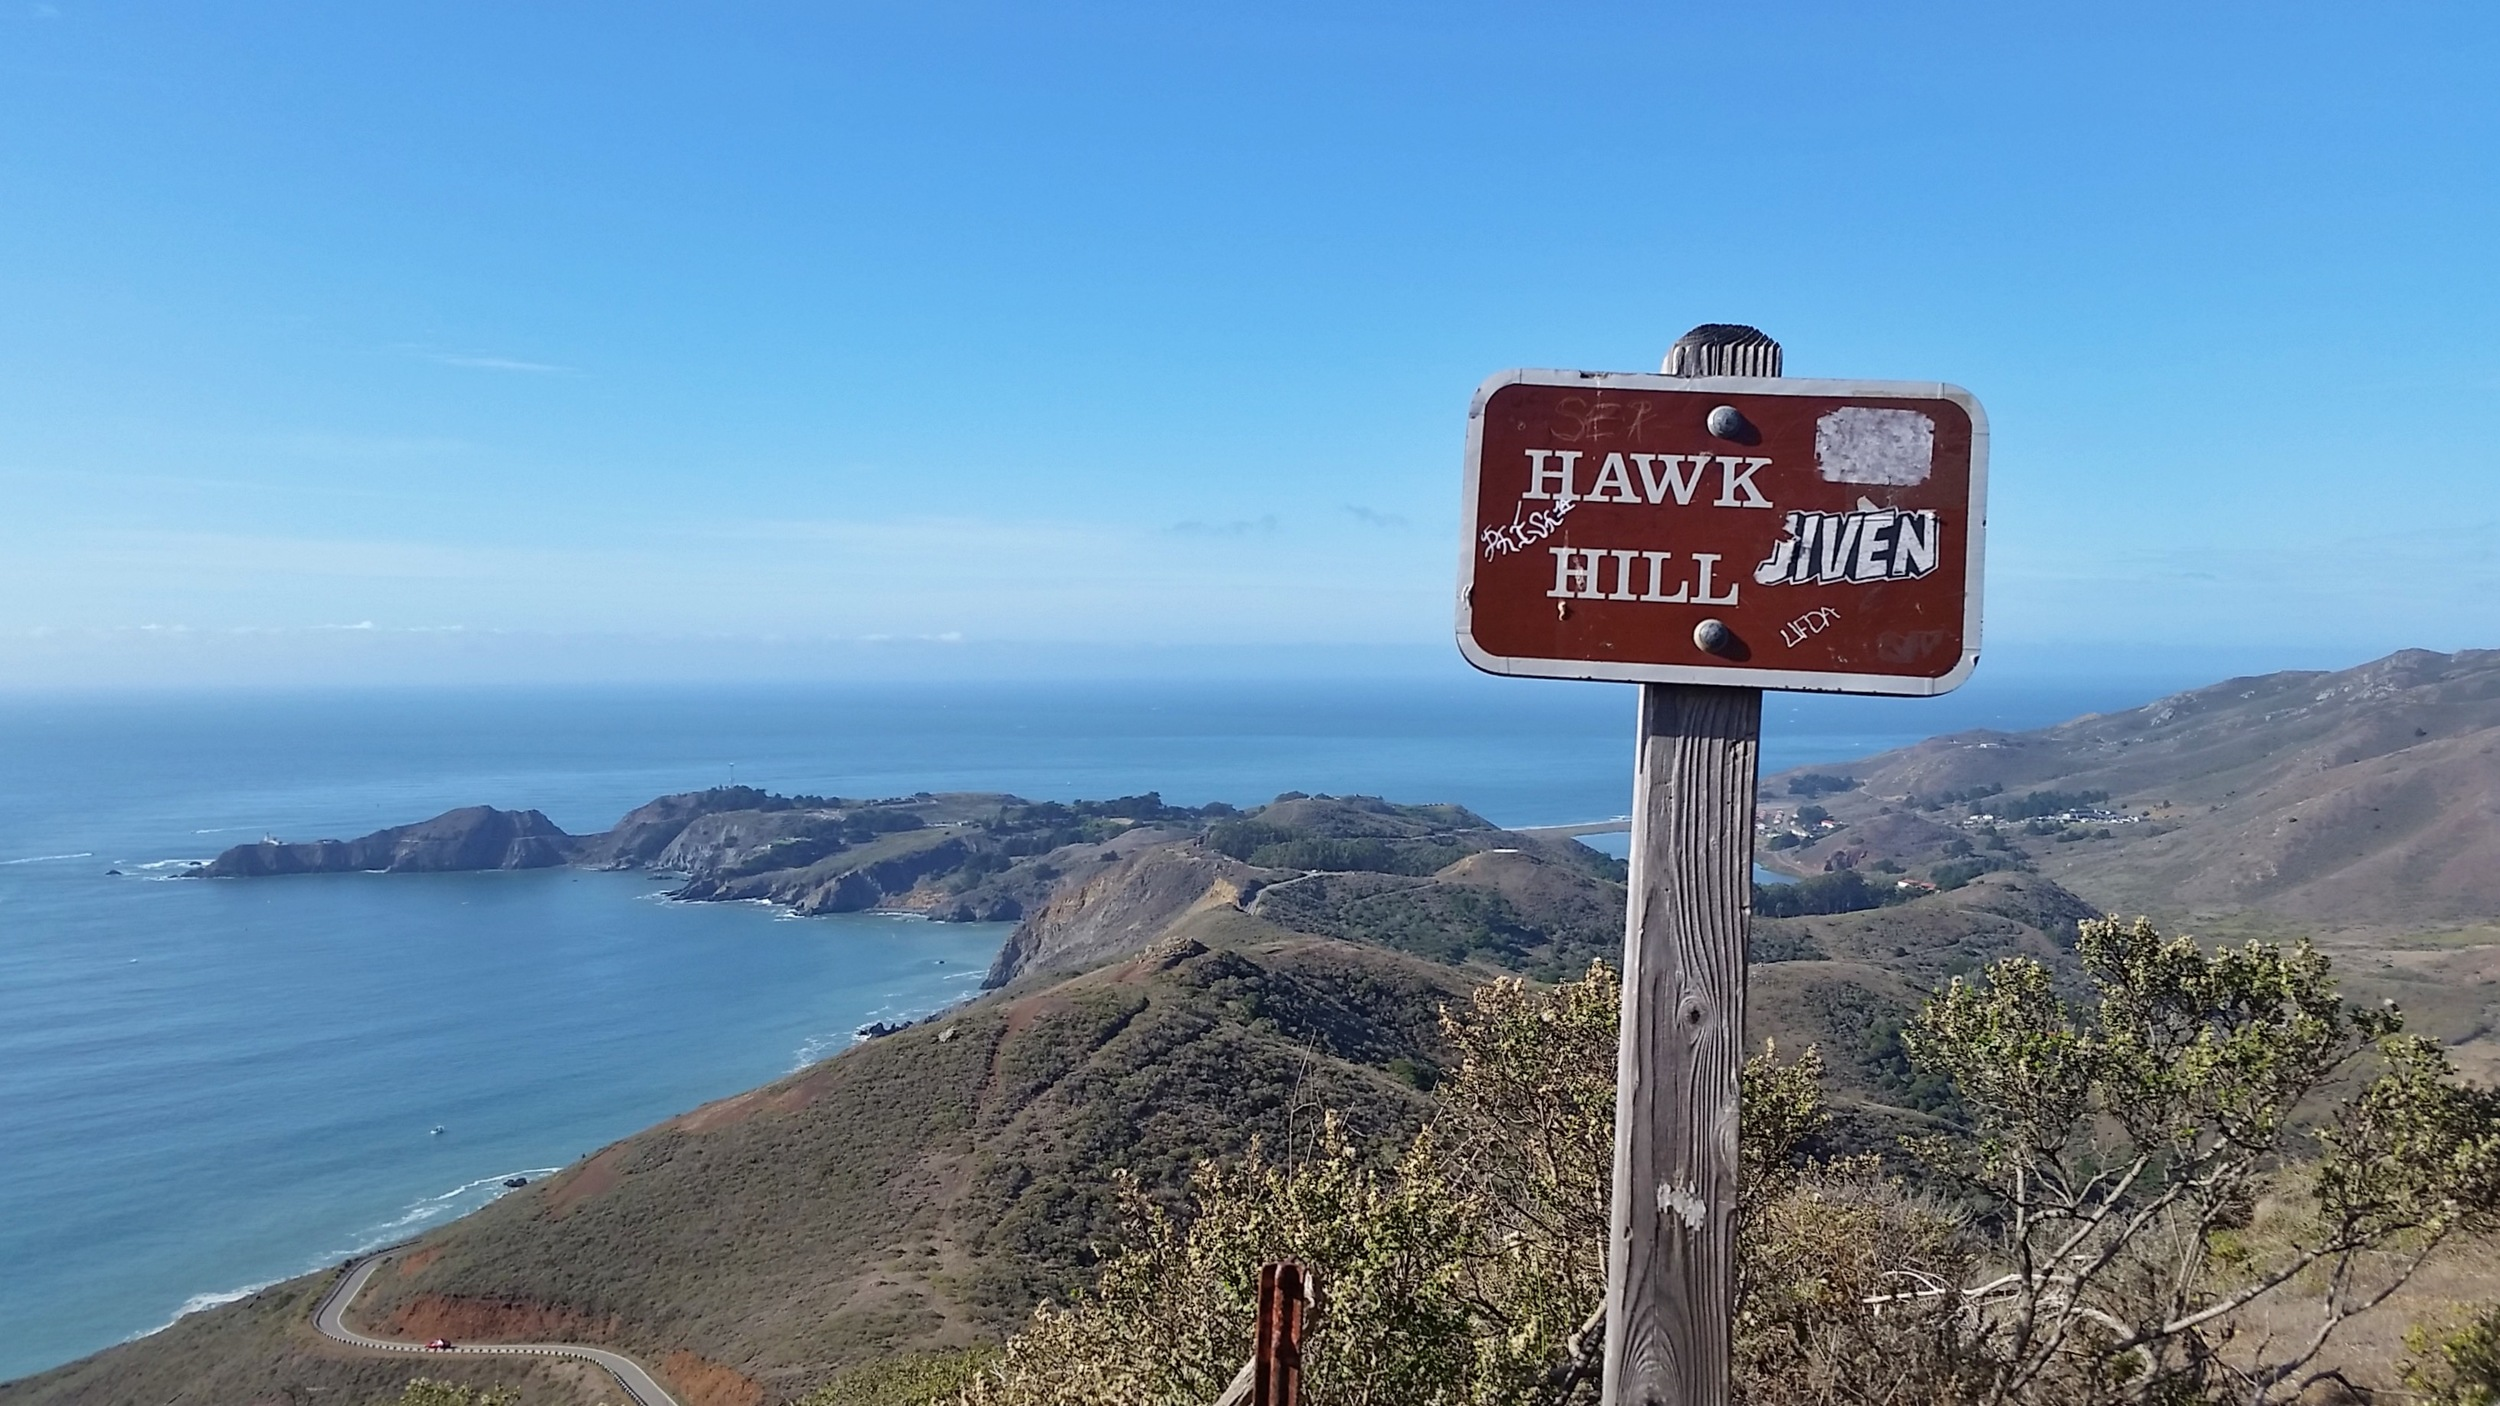 Hawk Hill Park in Golden Gate Heights features a sandy hidden trail with great views to the south.